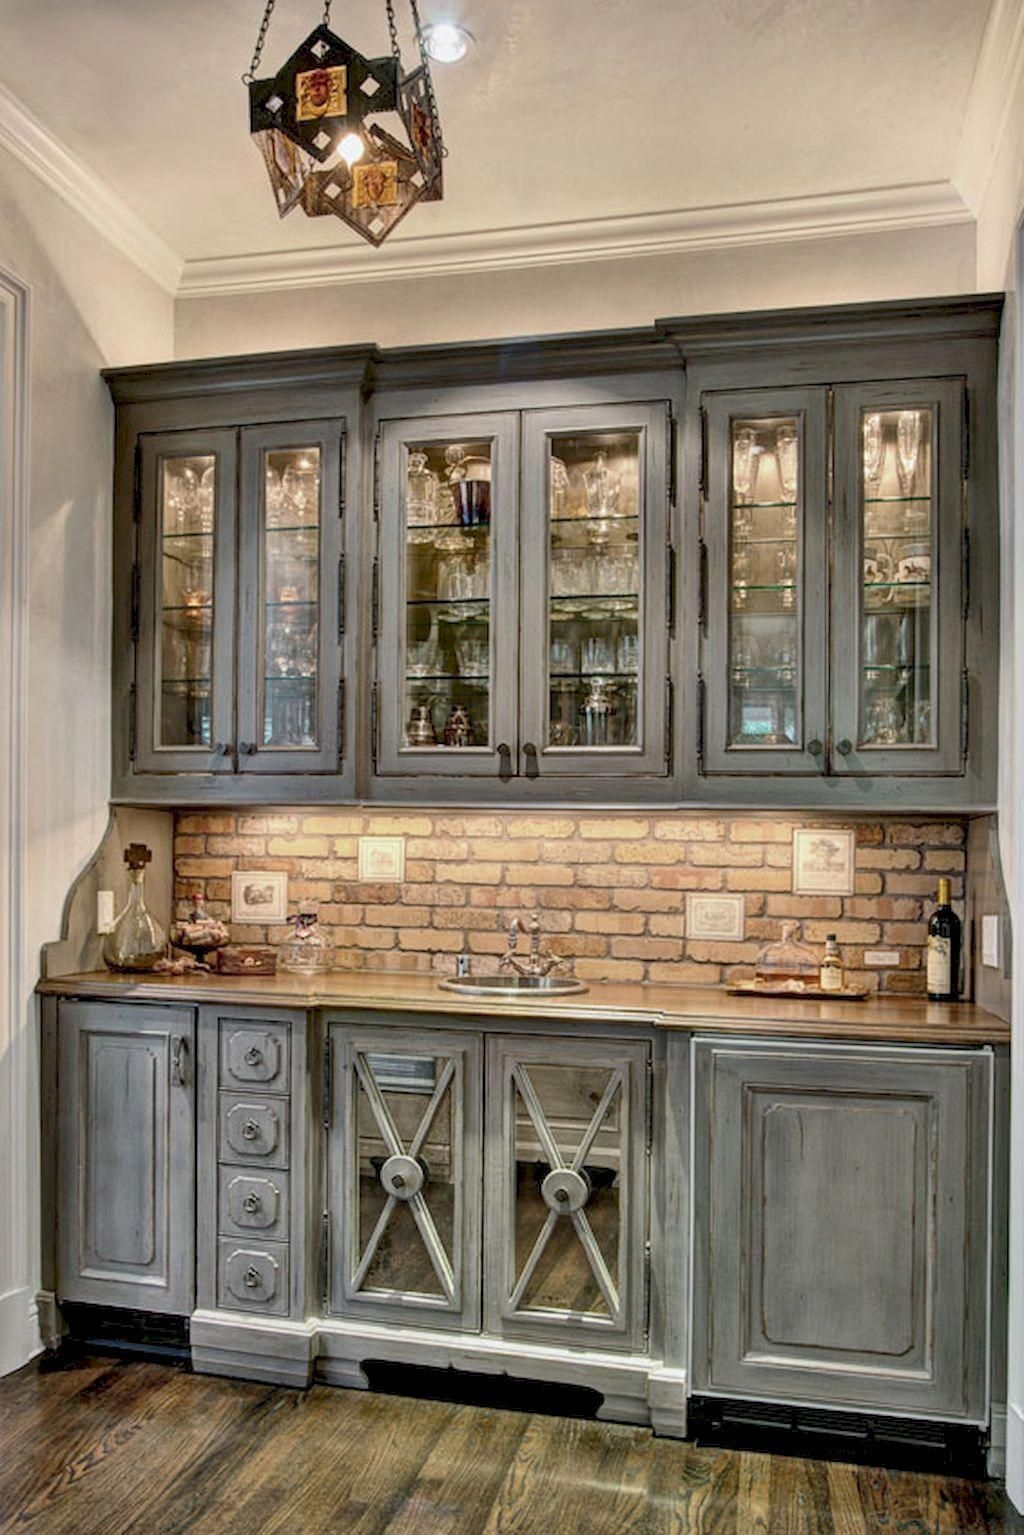 25+ Ways To Style Grey Kitchen Cabinets - Rustic farmhouse kitchen, Farmhouse kitchen decor, Farmhouse style kitchen, Antique kitchen cabinets, Grey kitchen cabinets, Rustic kitchen - Many have started to wonder are grey kitchen cabinets going out of style  Grey has remained a staple color in kitchen interior design for decades, but some worry that grey's time in the style spotlight is coming to an end  However, these 25+ inspiring grey kitchen designs prove otherwise  From modern to rustic, these grey …